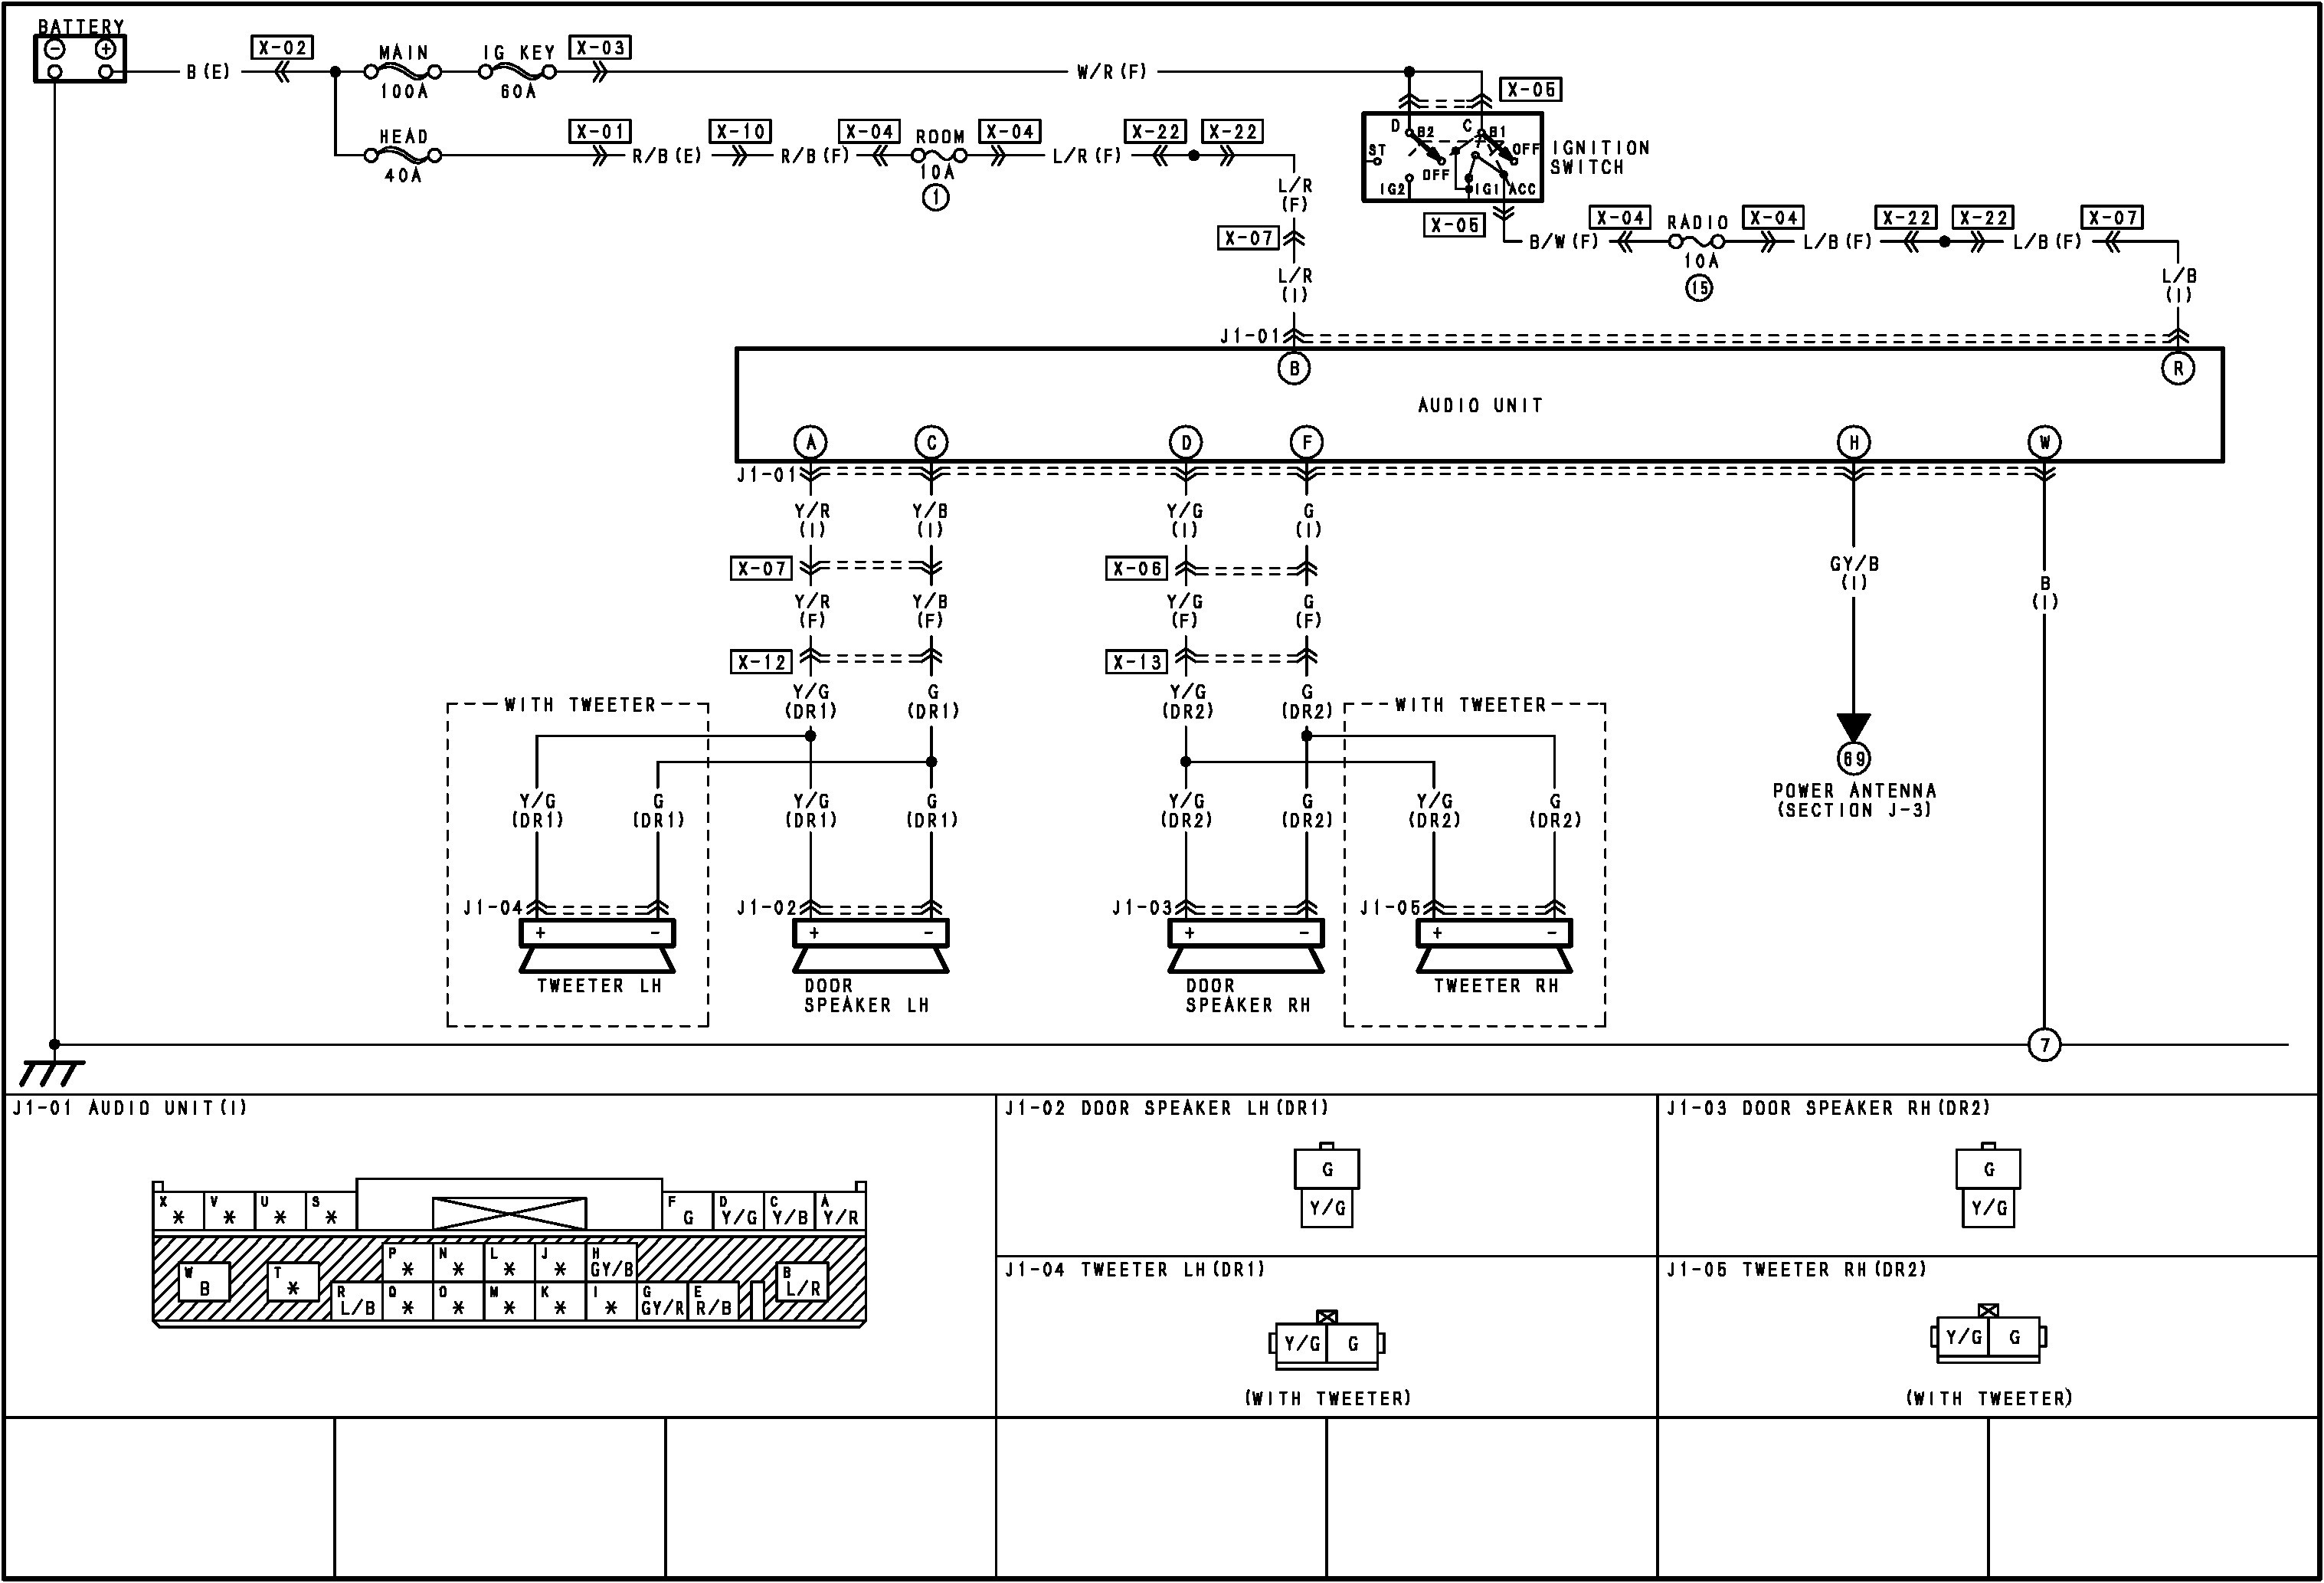 A77AC9 John Deere 2520 Wiring Diagram | Wiring Resources 2019 on subaru wire diagram, saab wire diagram, international wire diagram, suzuki wire diagram, husqvarna wire diagram, massey ferguson wire diagram, toyota wire diagram, ford wire diagram, toro wire diagram, yamaha wire diagram, sears wire diagram, bmw wire diagram, dixie chopper wire diagram, chrysler wire diagram, gmc wire diagram, paccar wire diagram, cat wire diagram, genie wire diagram, bobcat wire diagram, sterling wire diagram,